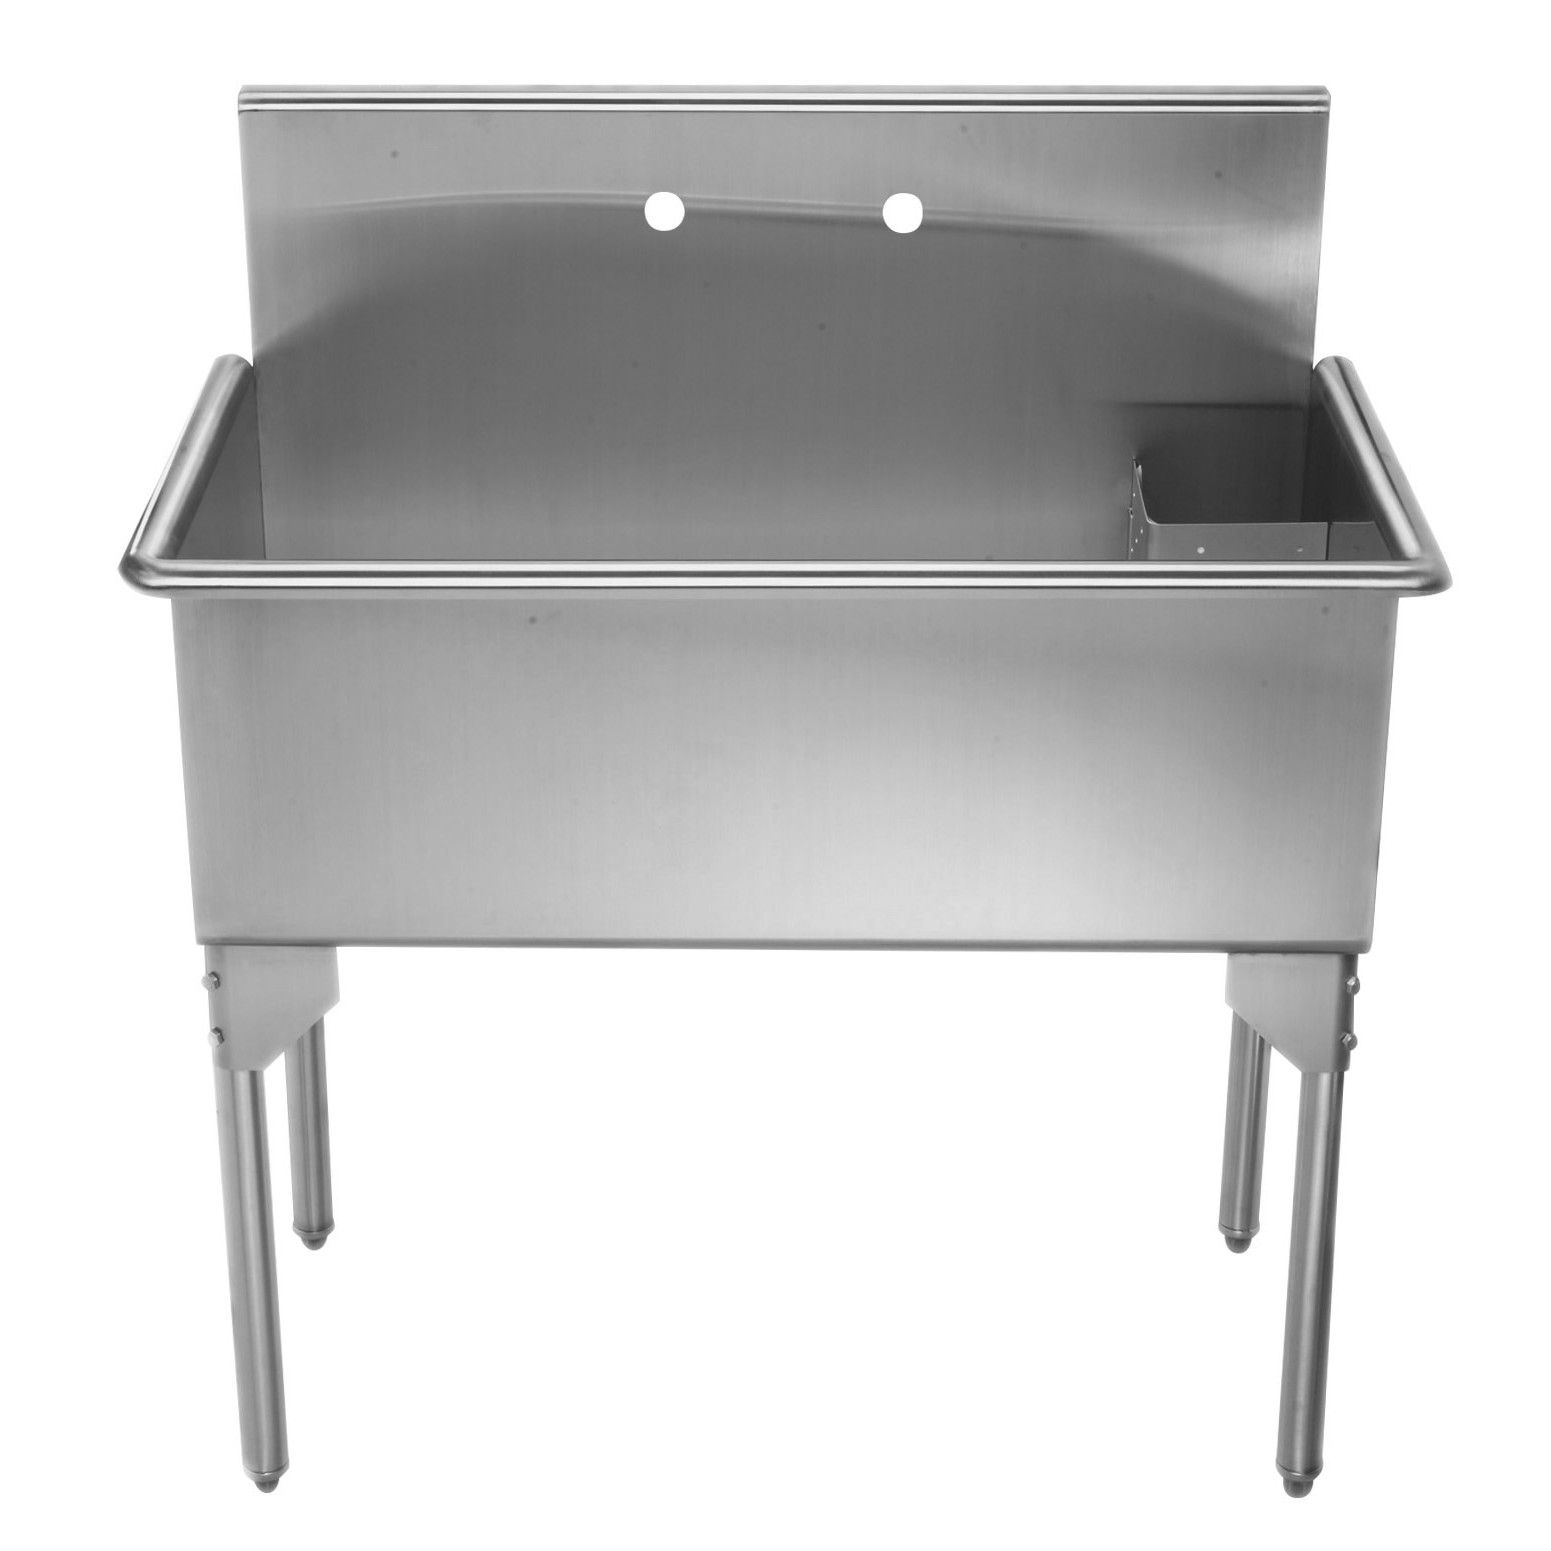 Deluxe Pearlhaus 39 X 21 Single Stainless Steel Freestanding Utility ...